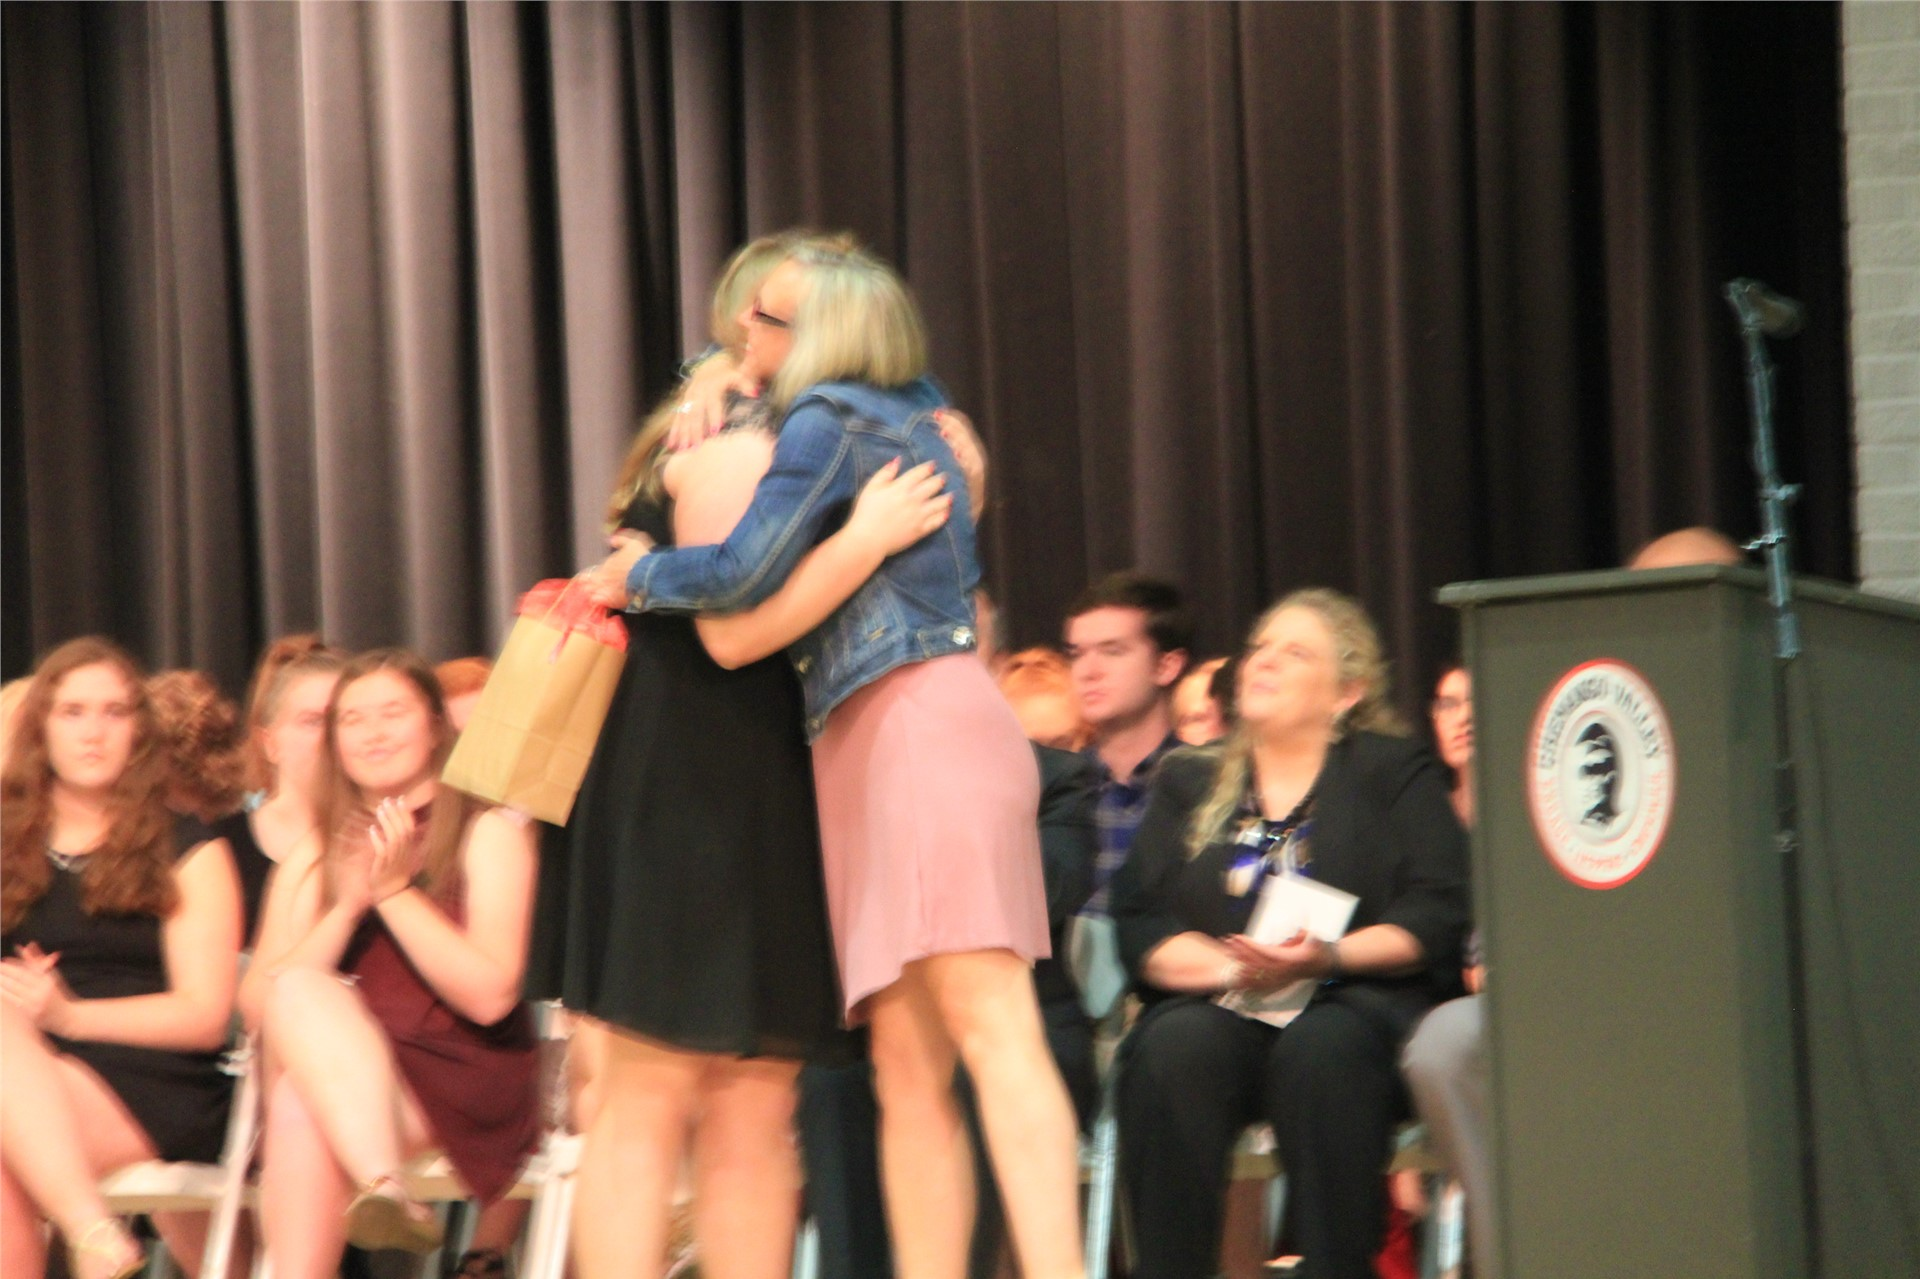 female student hugs woman giving her award